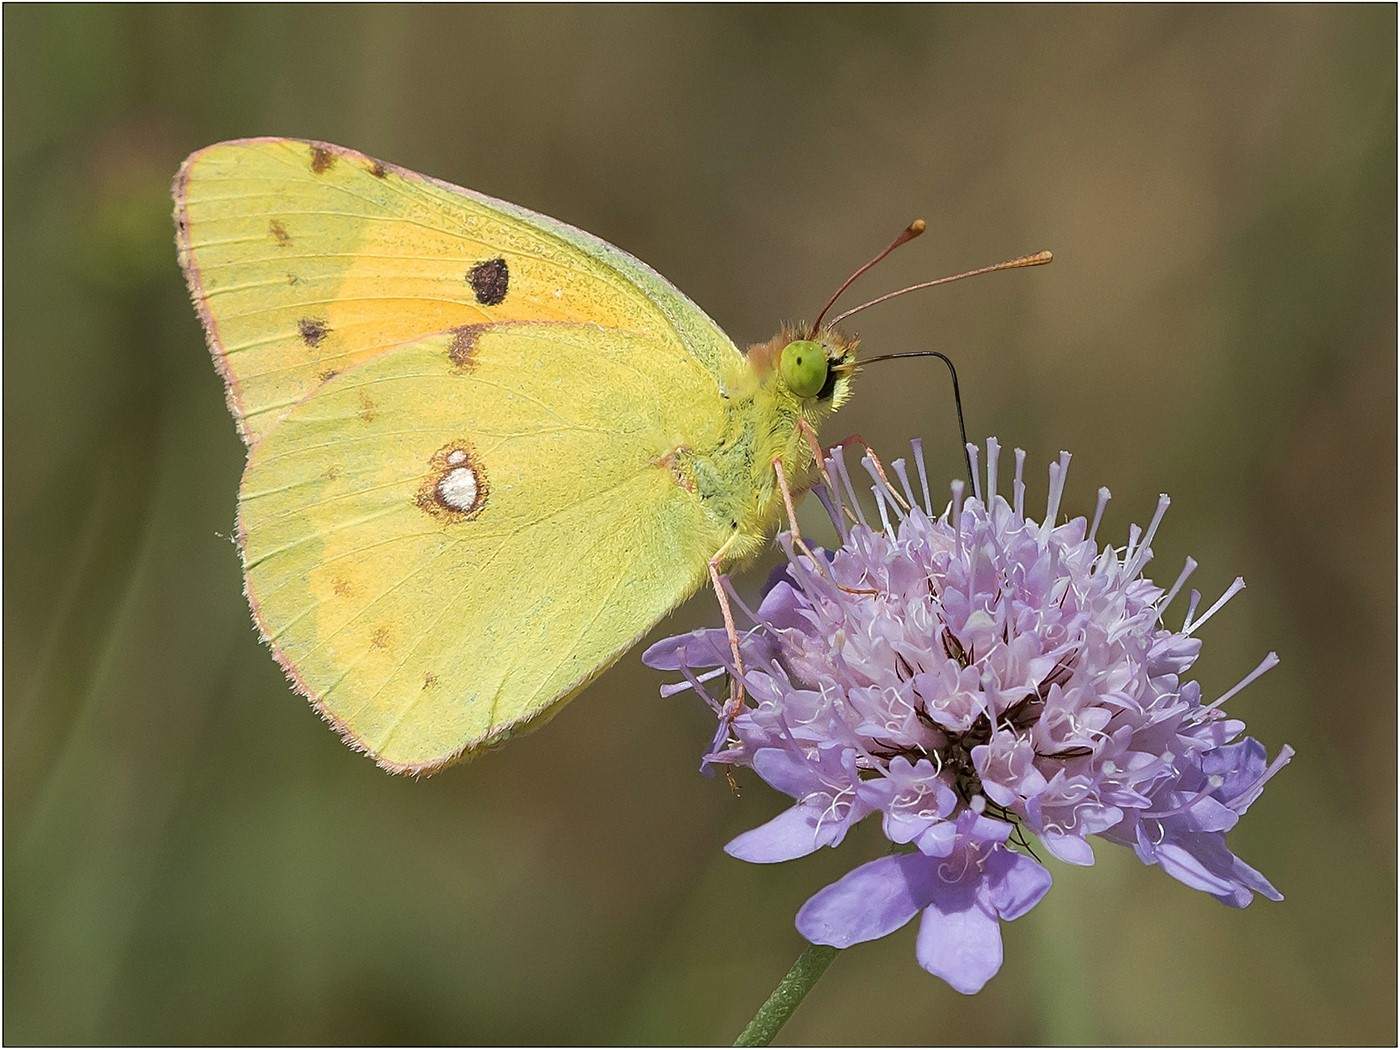 Clouded Yellow Butterfly on Scabious